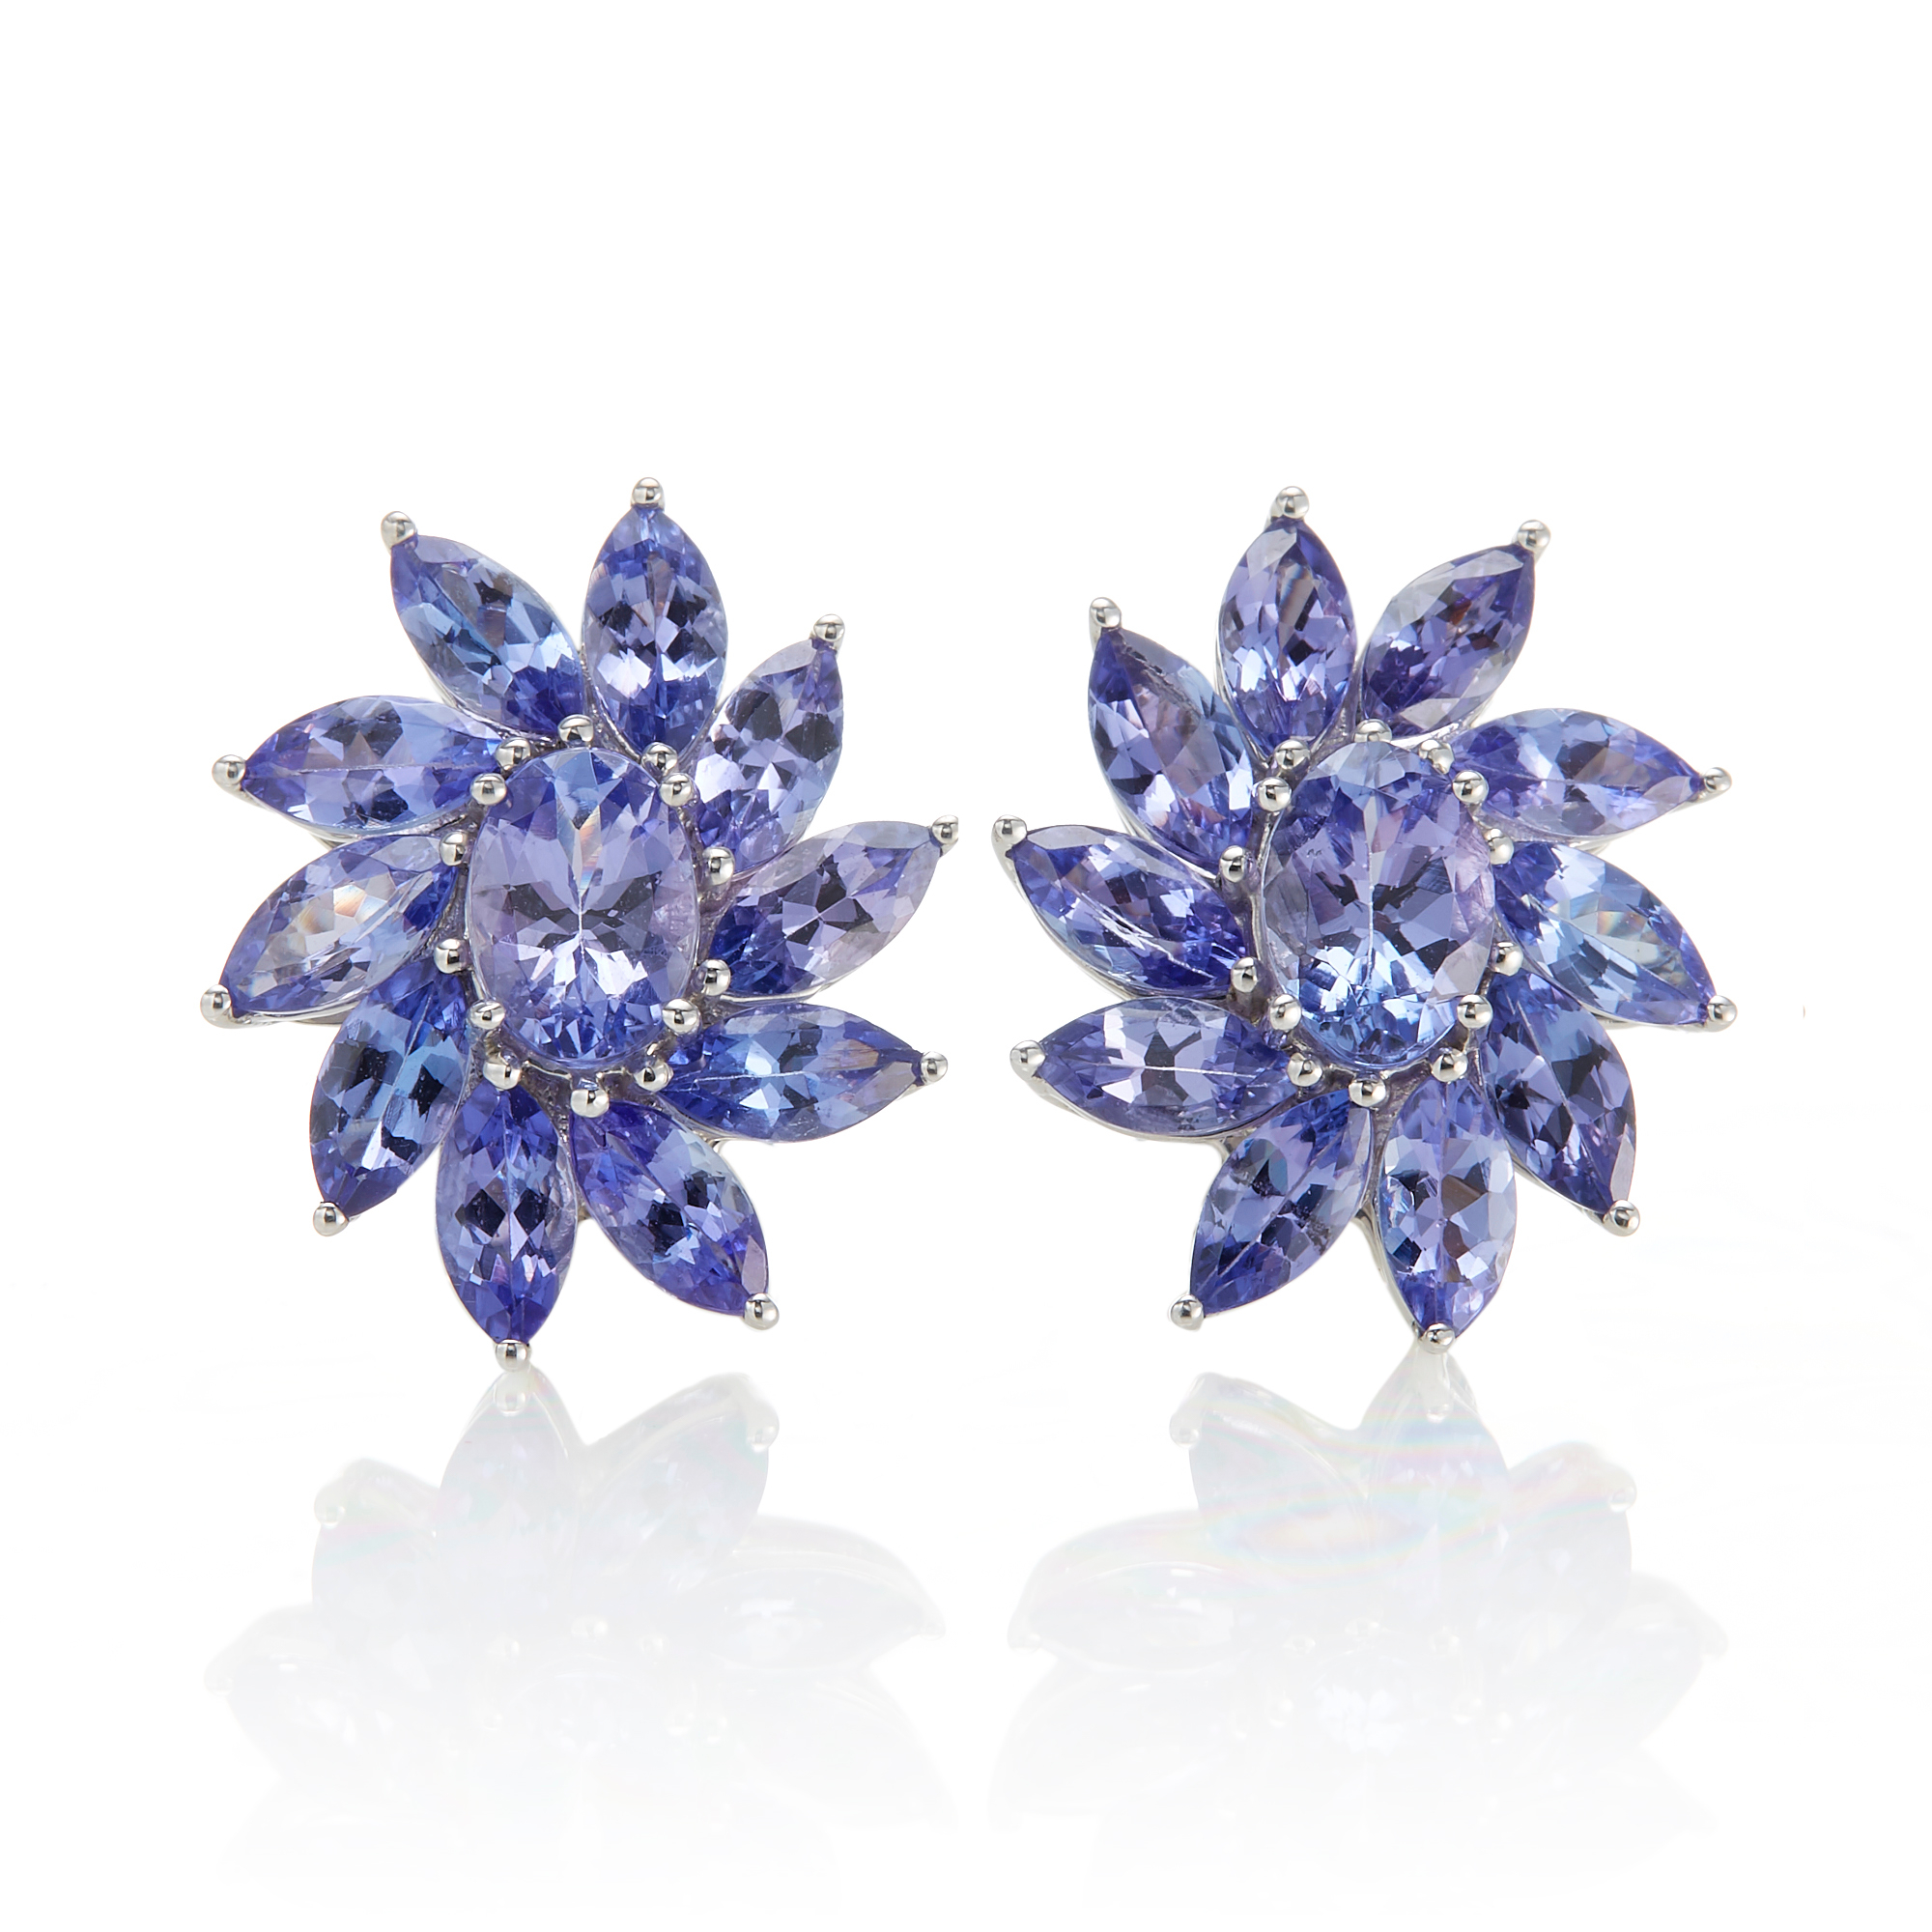 Gump's Sunburst Tanzanite Earrings